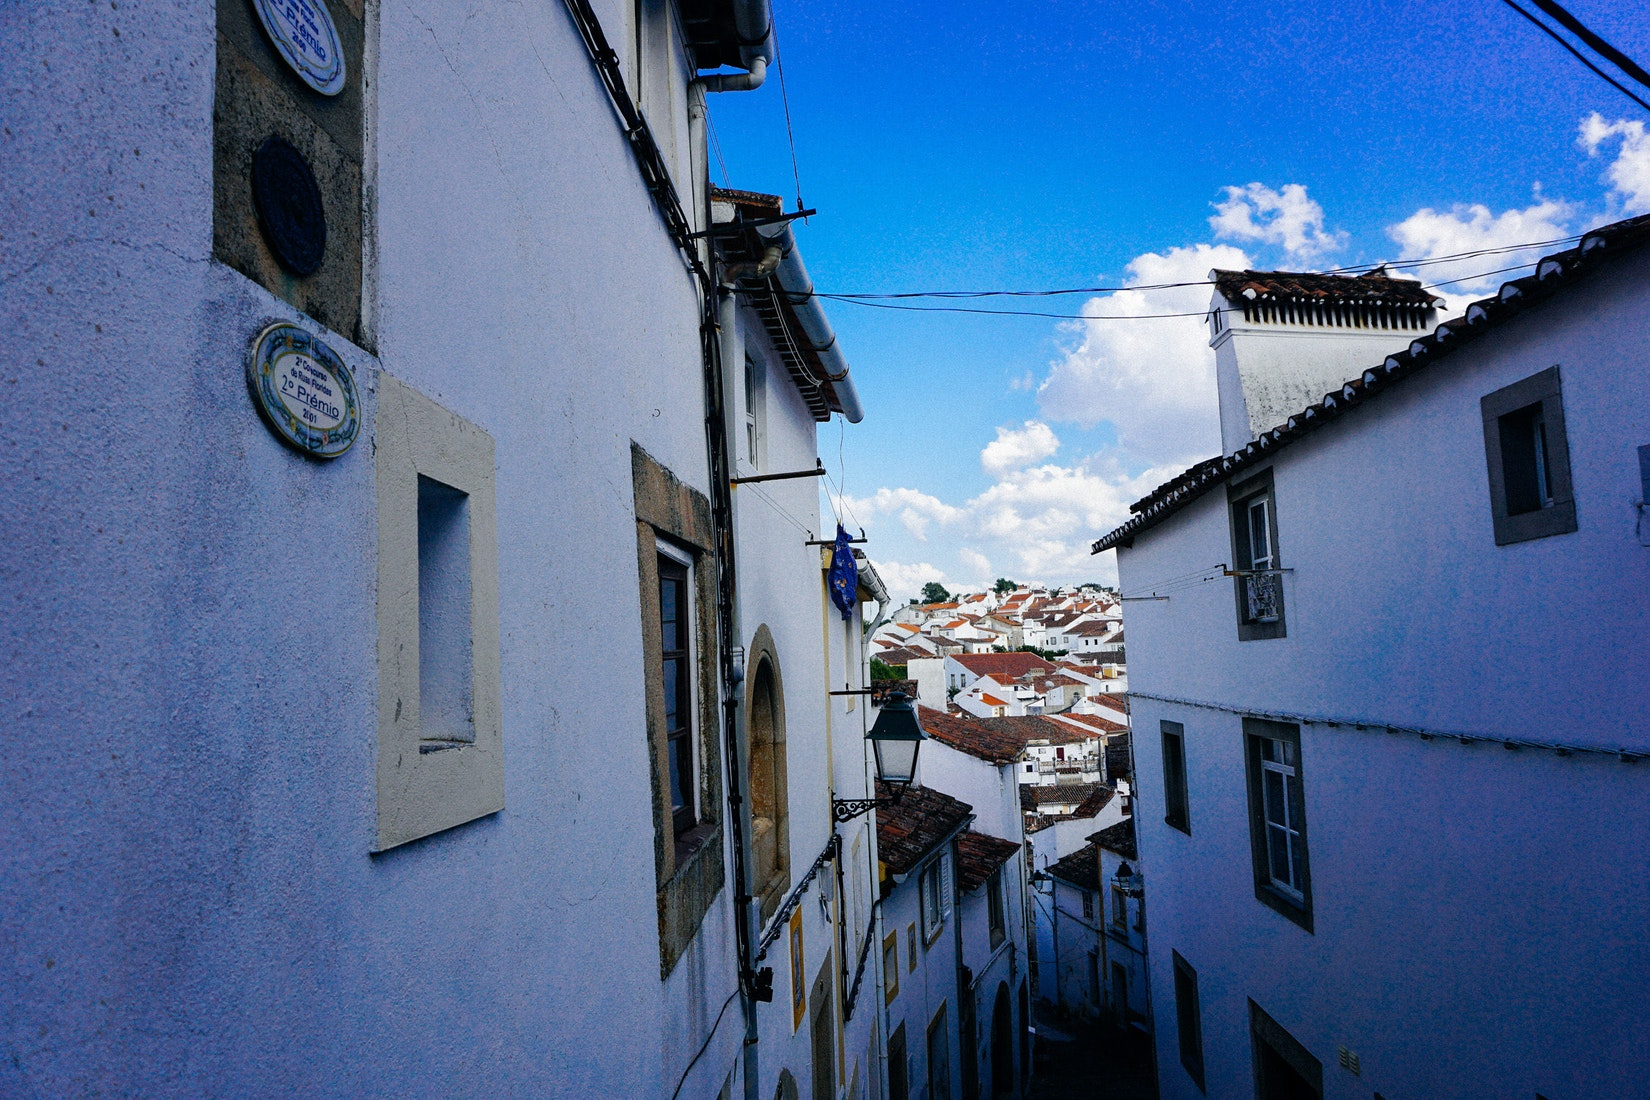 Hilly street that leads to a great view in Castelo de Vide